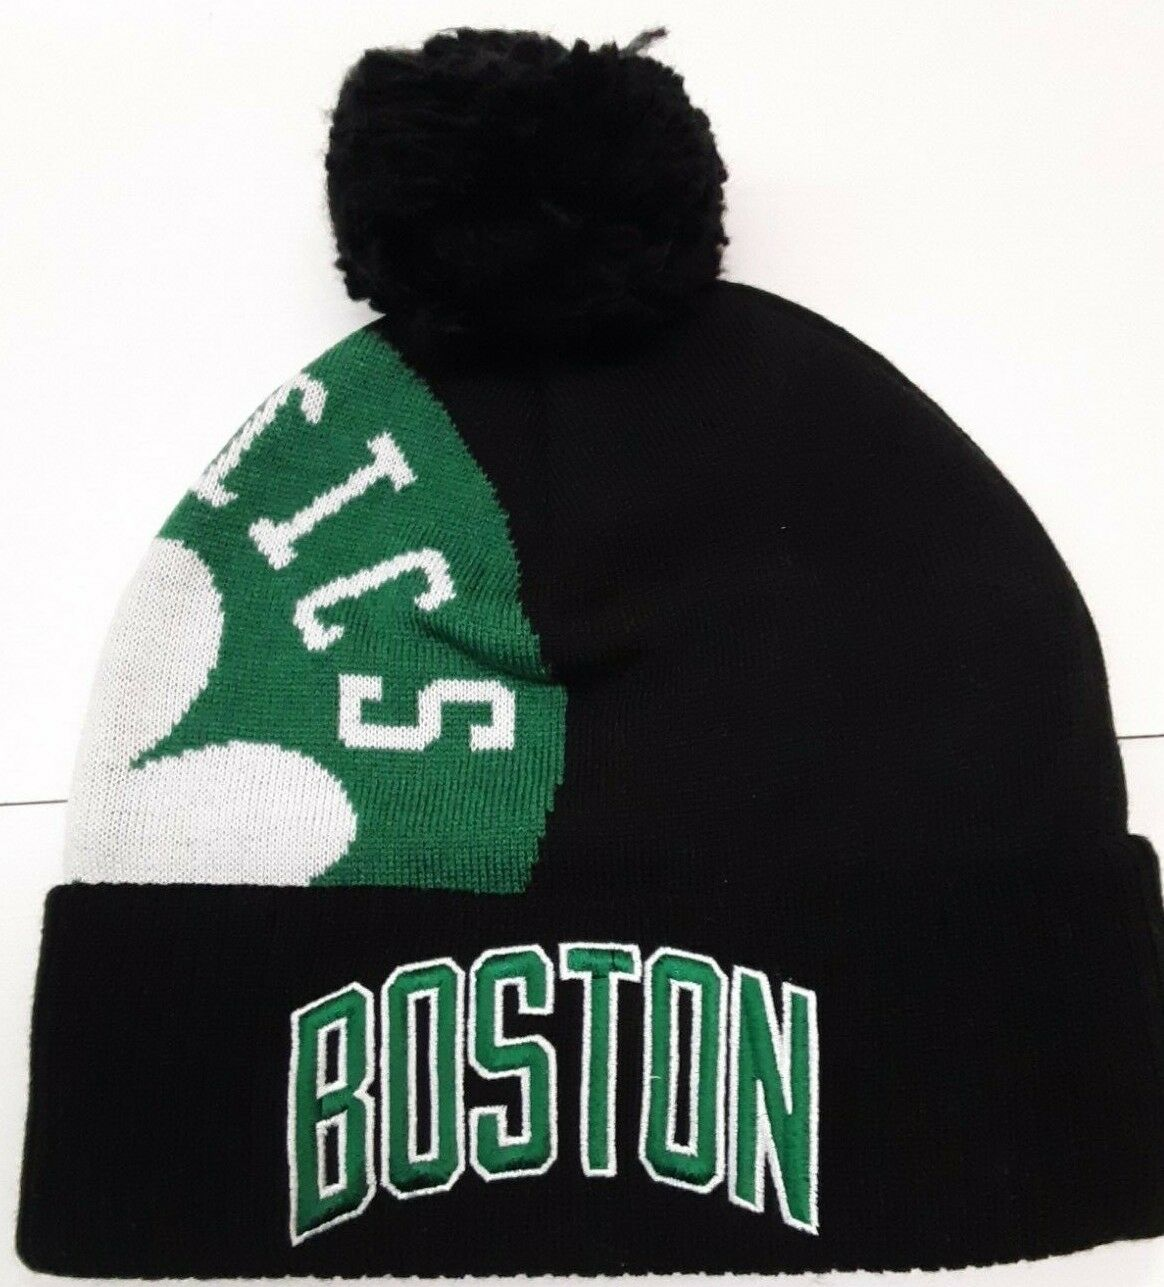 size 40 online retailer later Boston Celtics NBA Adidas Knit Hat cuffed pom for sale online